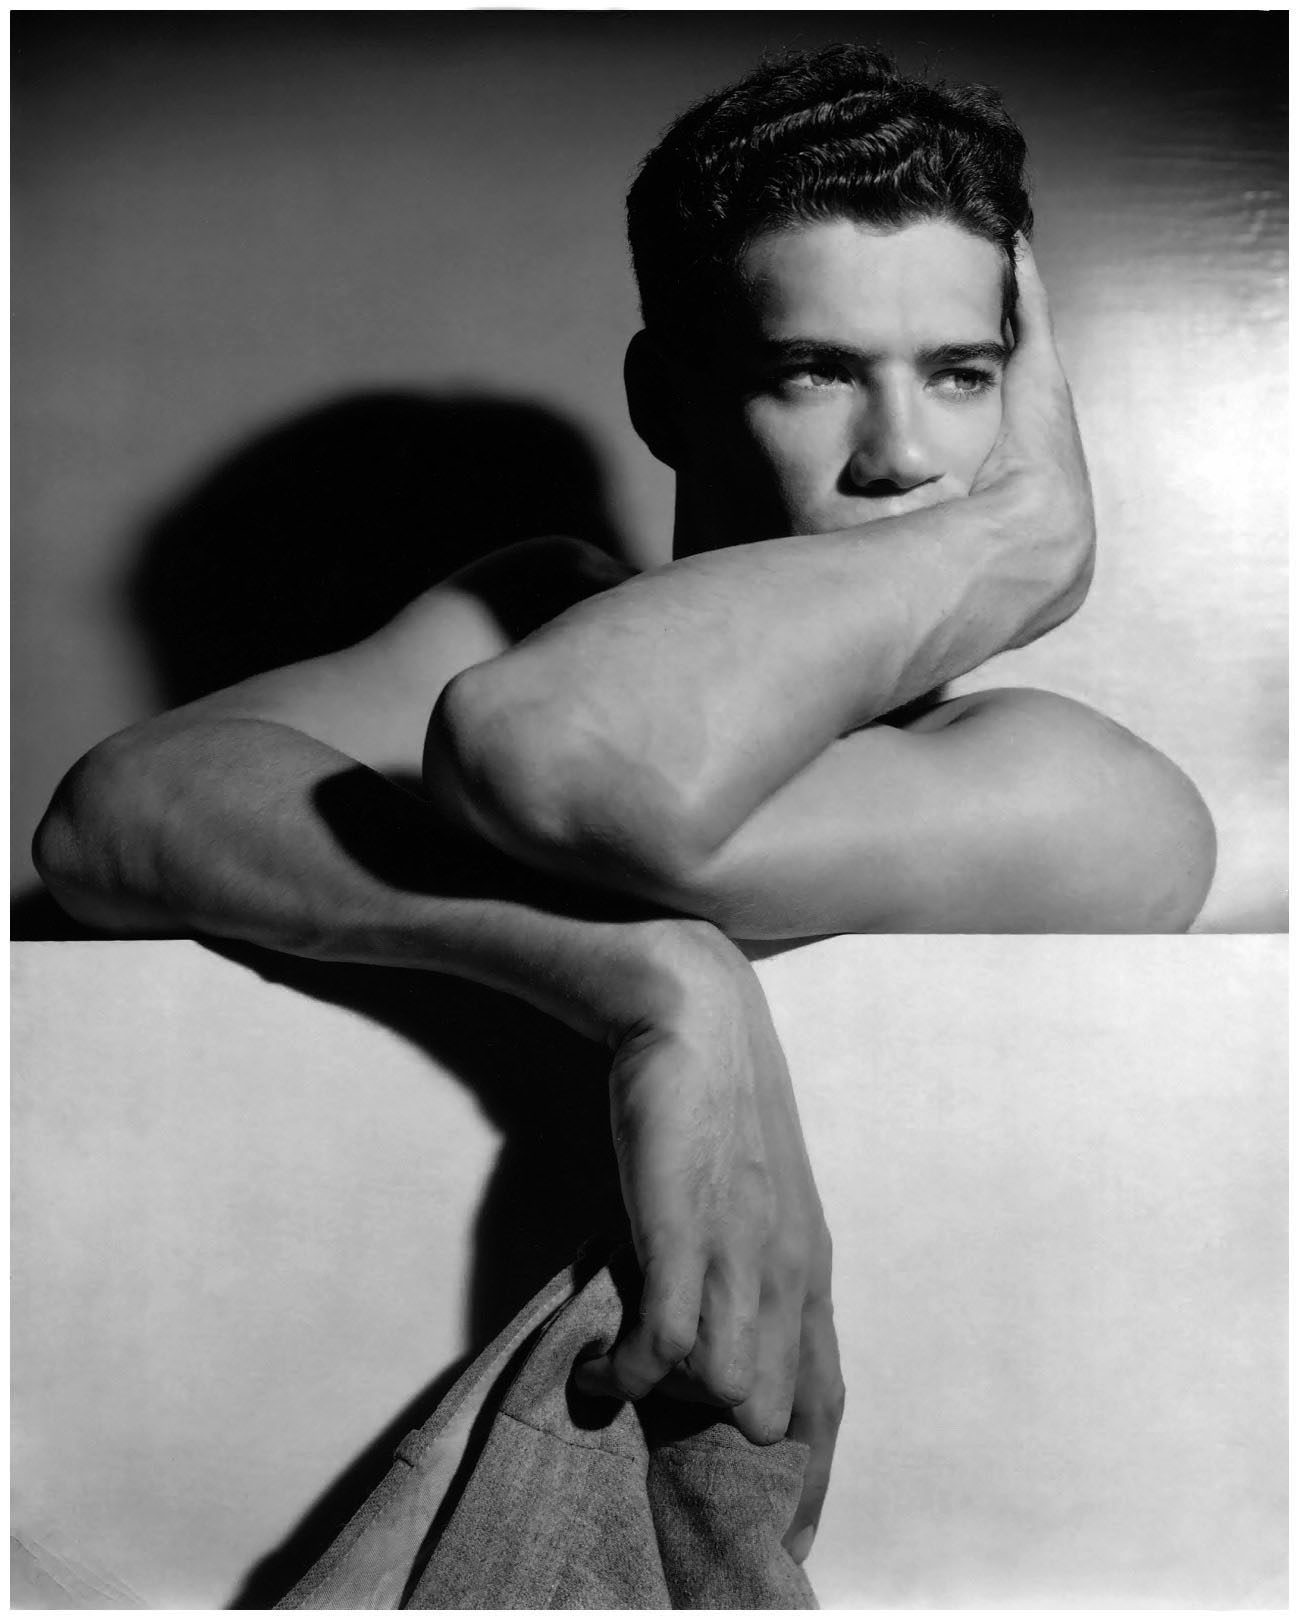 Photographs And Text George Platt Lynes And The Male Nude -9474